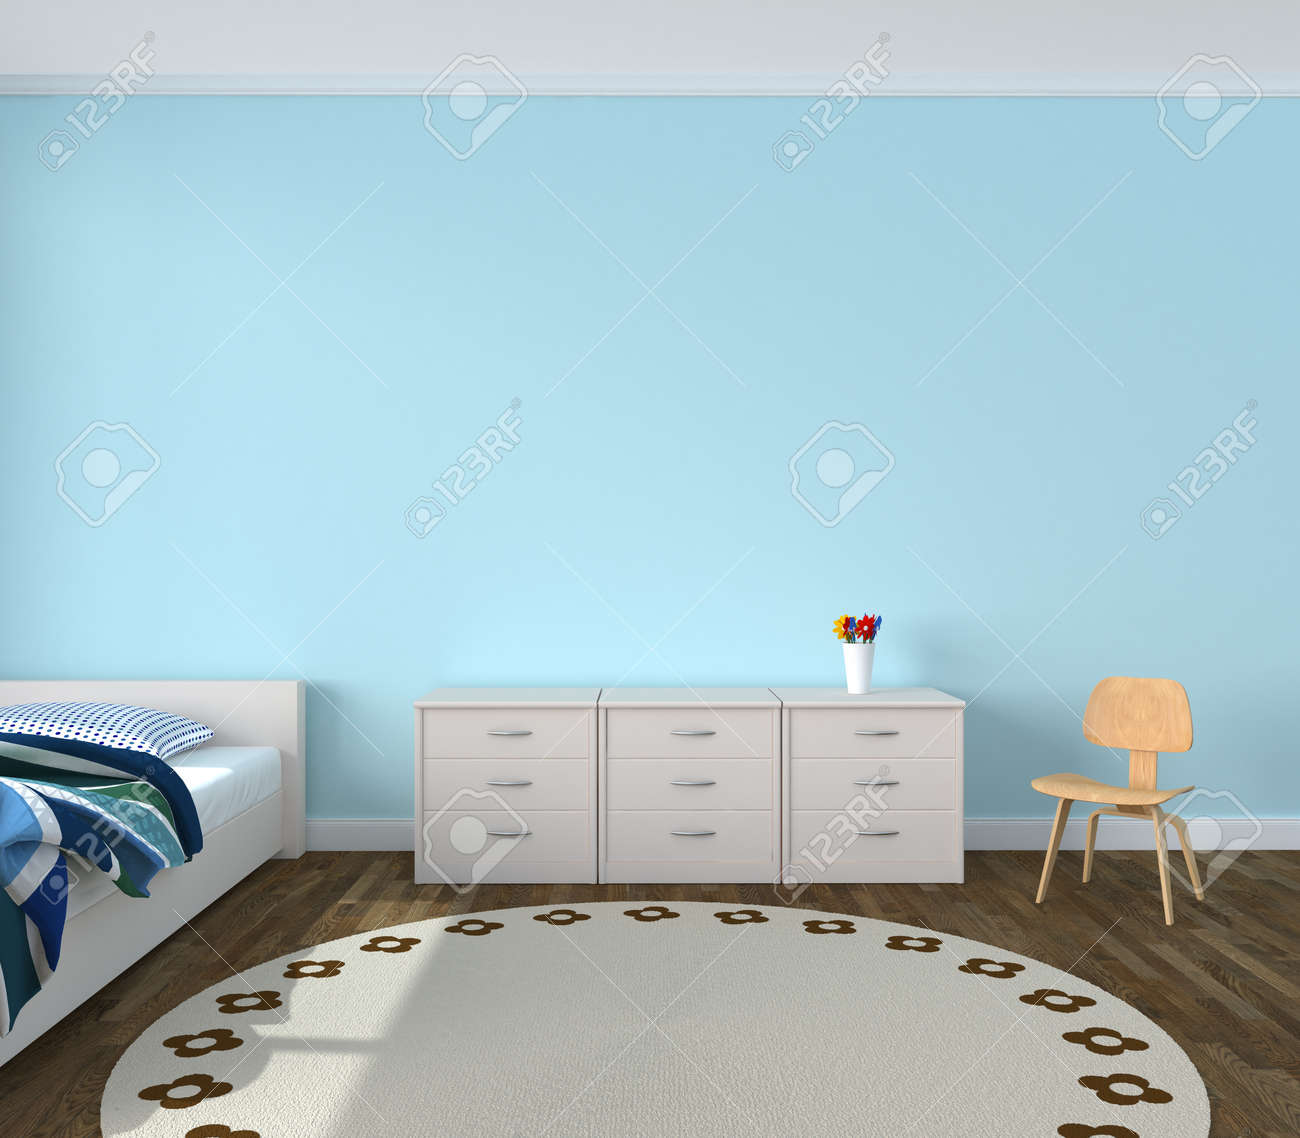 Kids Bedroom Wall Kidsroom Playroom Stock Photo Picture And Royalty Free Image